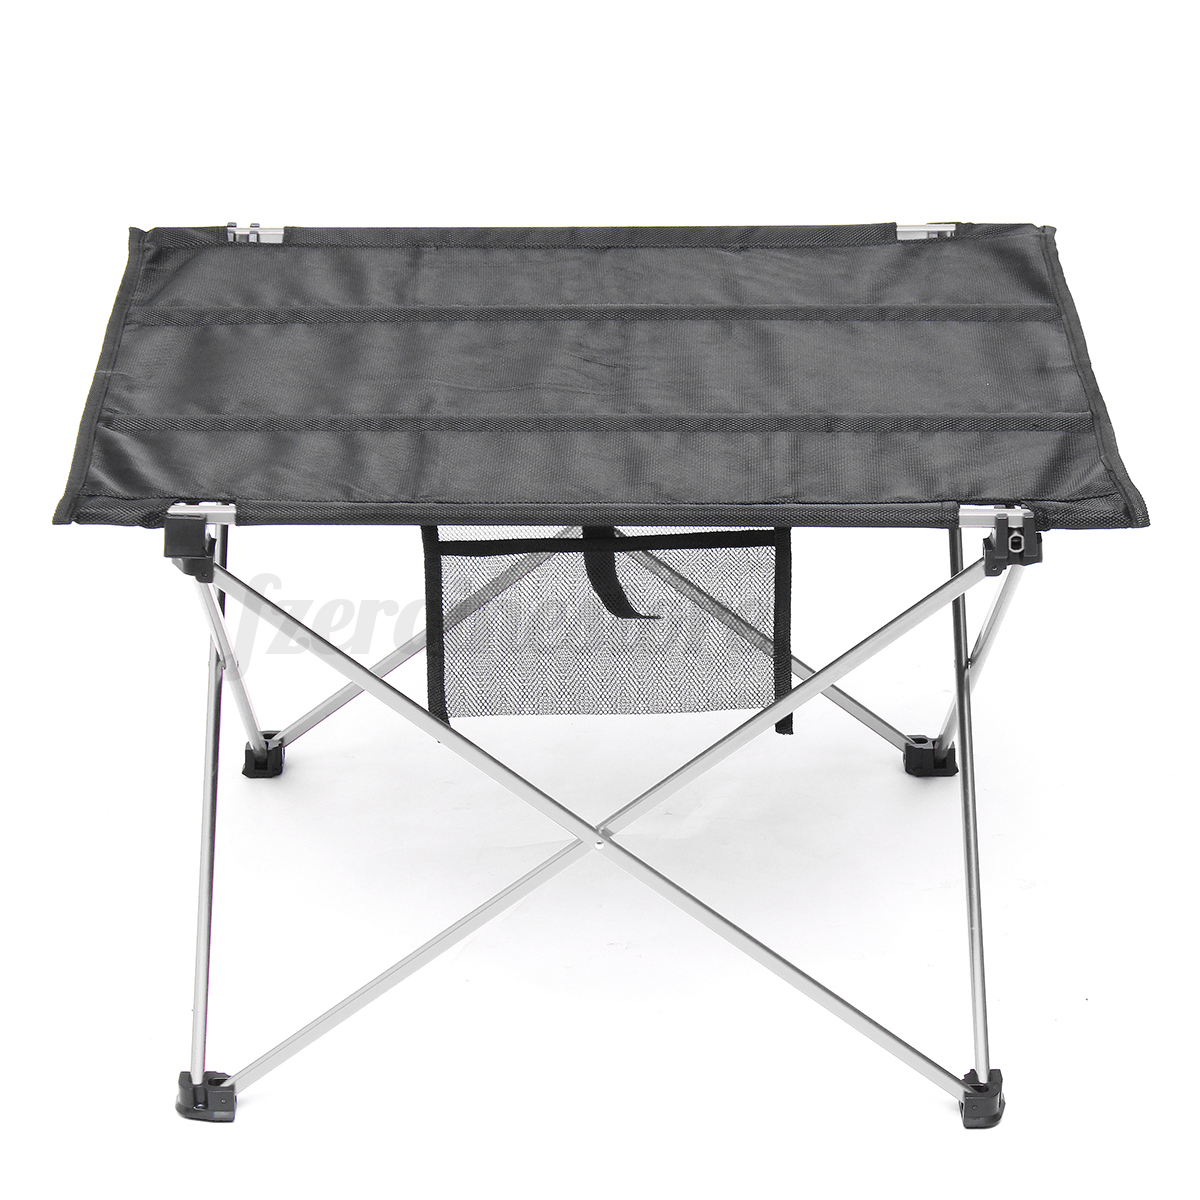 Mesa plegable de aluminio port til camping terraza jard n for Mesa plegable portatil